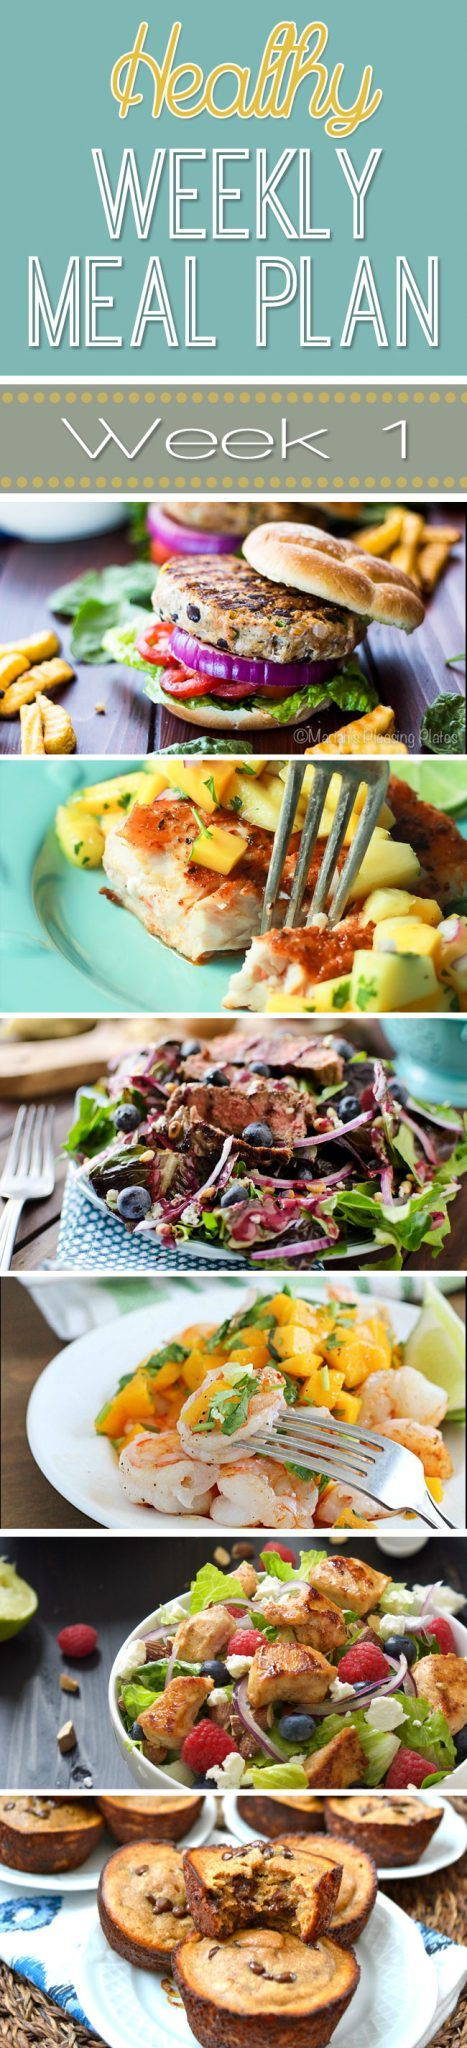 A delicious mix of healthy entrees, snacks and sides make up this Healthy Weekly Meal Plan for an easy week of nutritious meals your family will love! #MealPlan #Menu #Healthy